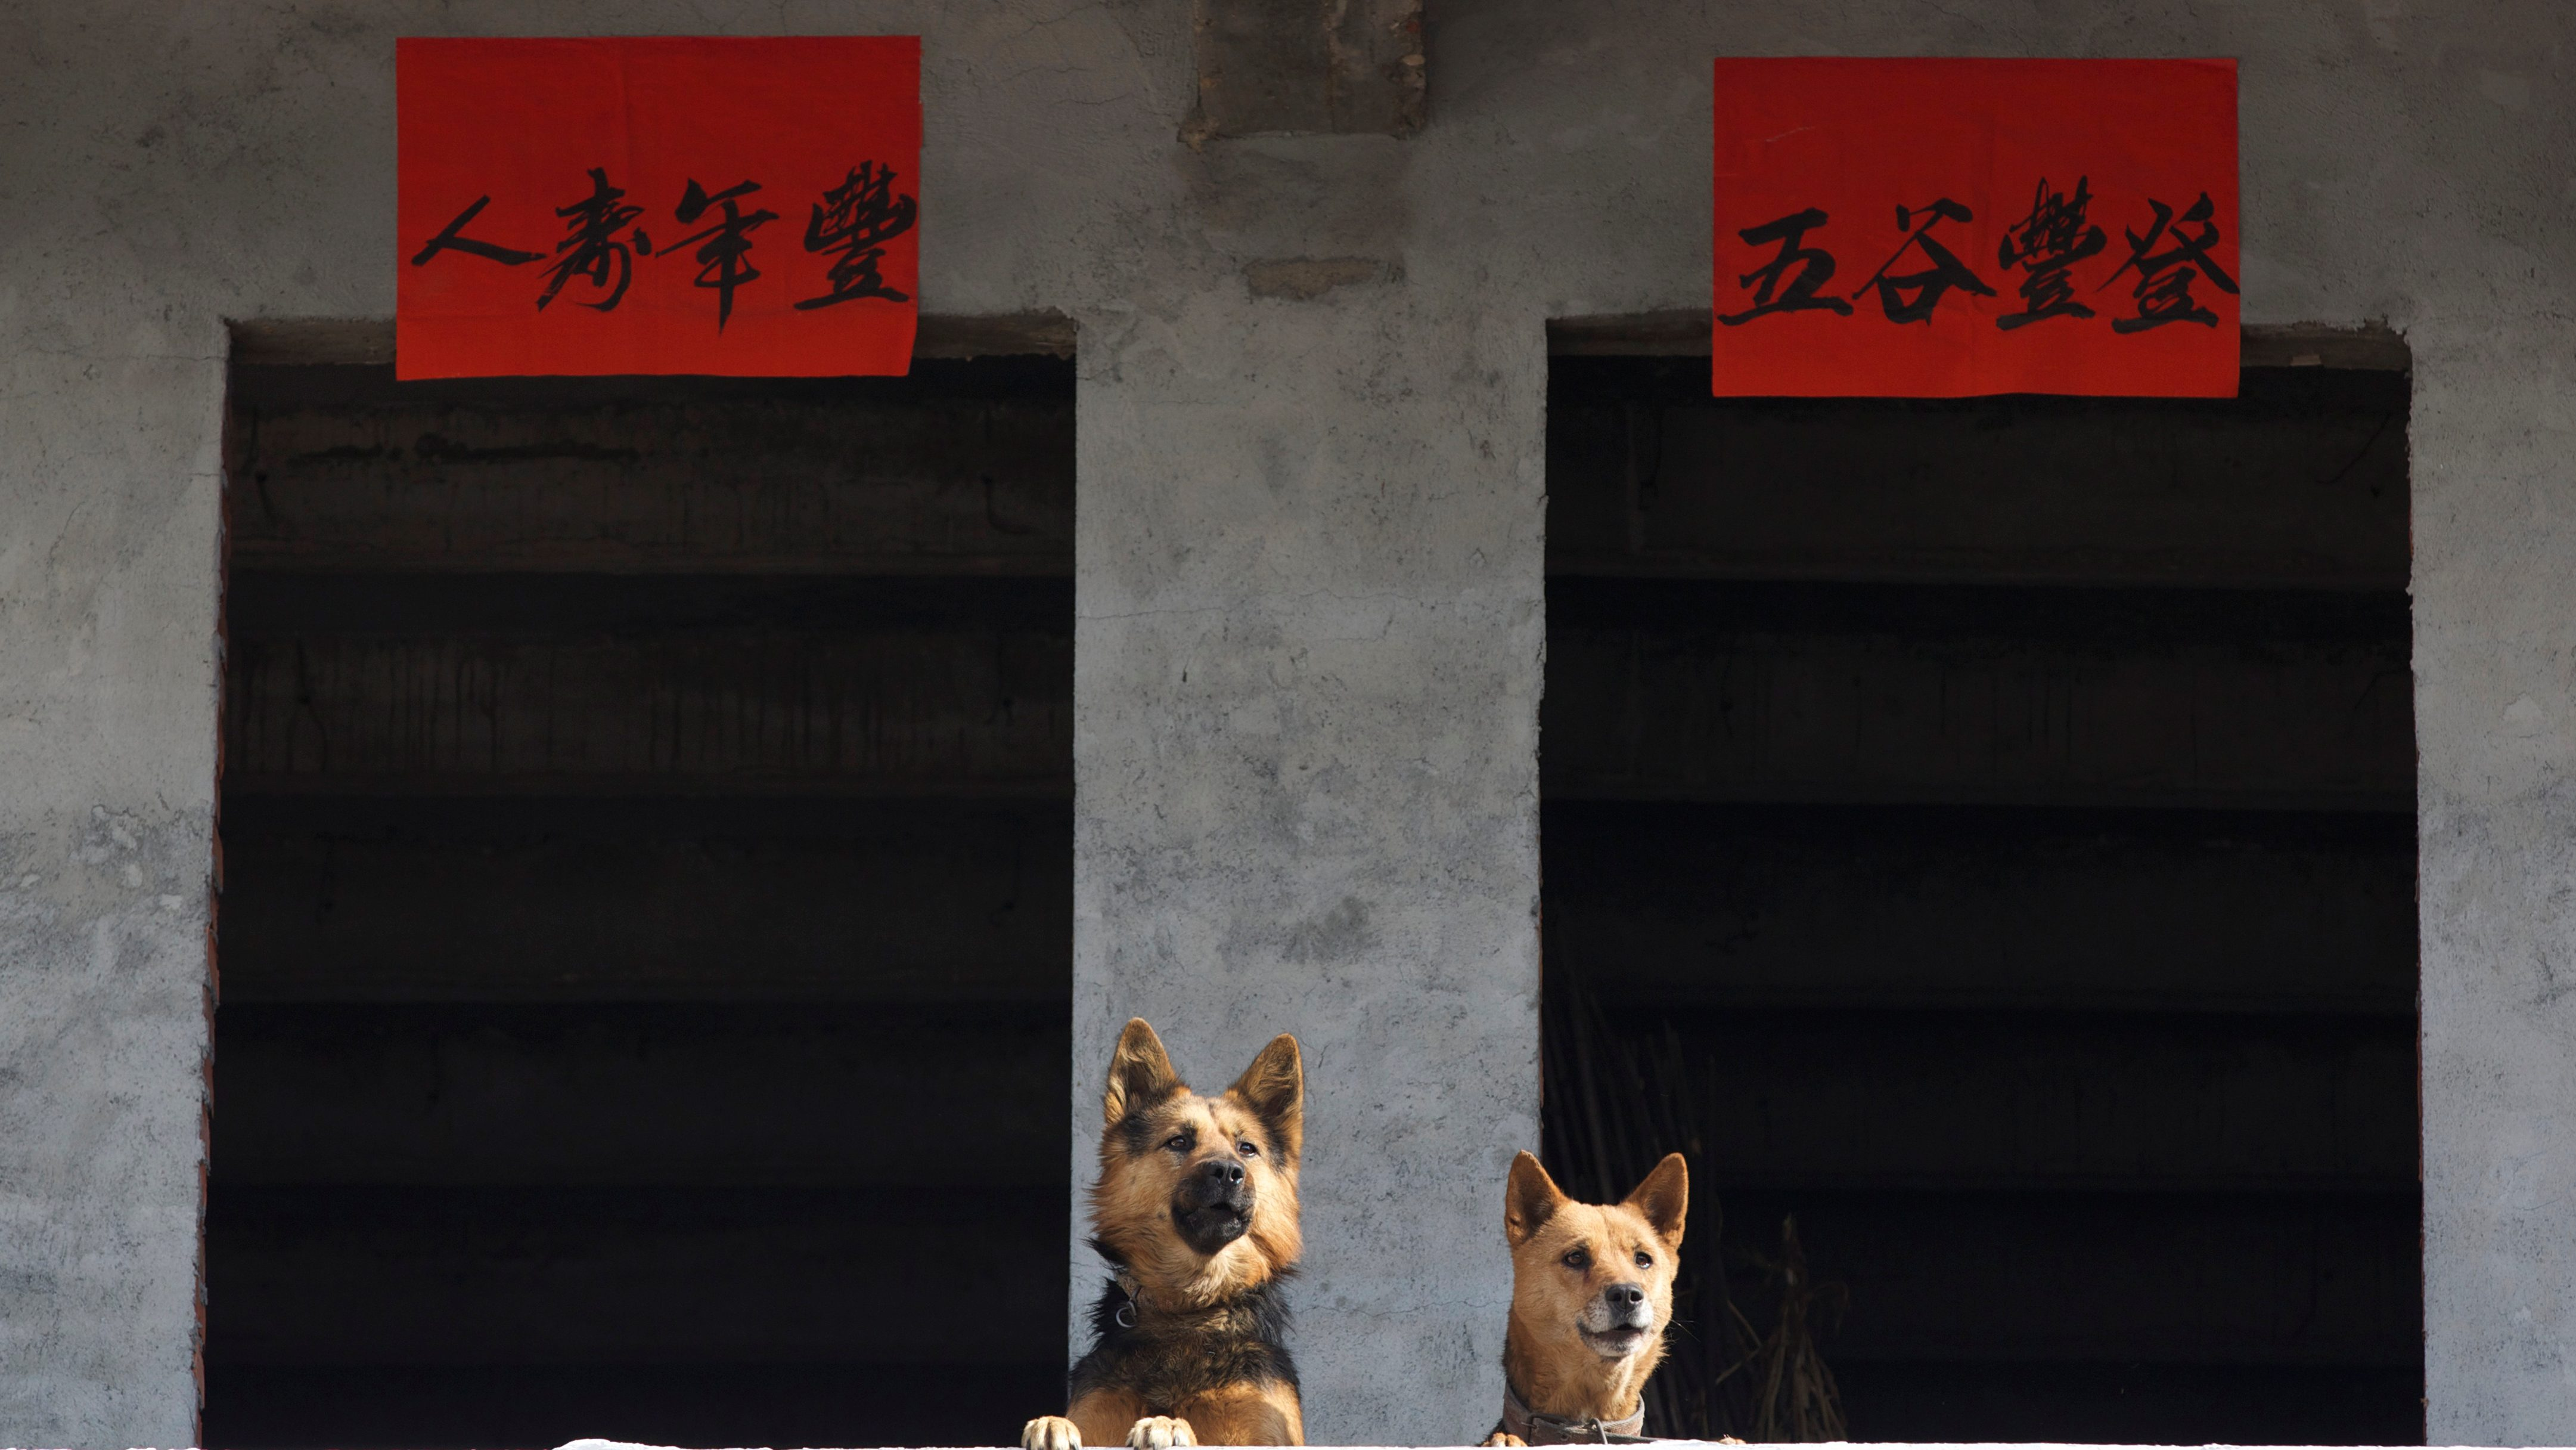 Dogs are seen next to Lunar New Year decorations during a celebration ahead of Year of the Dog in Jinhua, Zhejiang province, China January 16, 2018. Picture taken January 16, 2018. Yang Meiqing via REUTERS